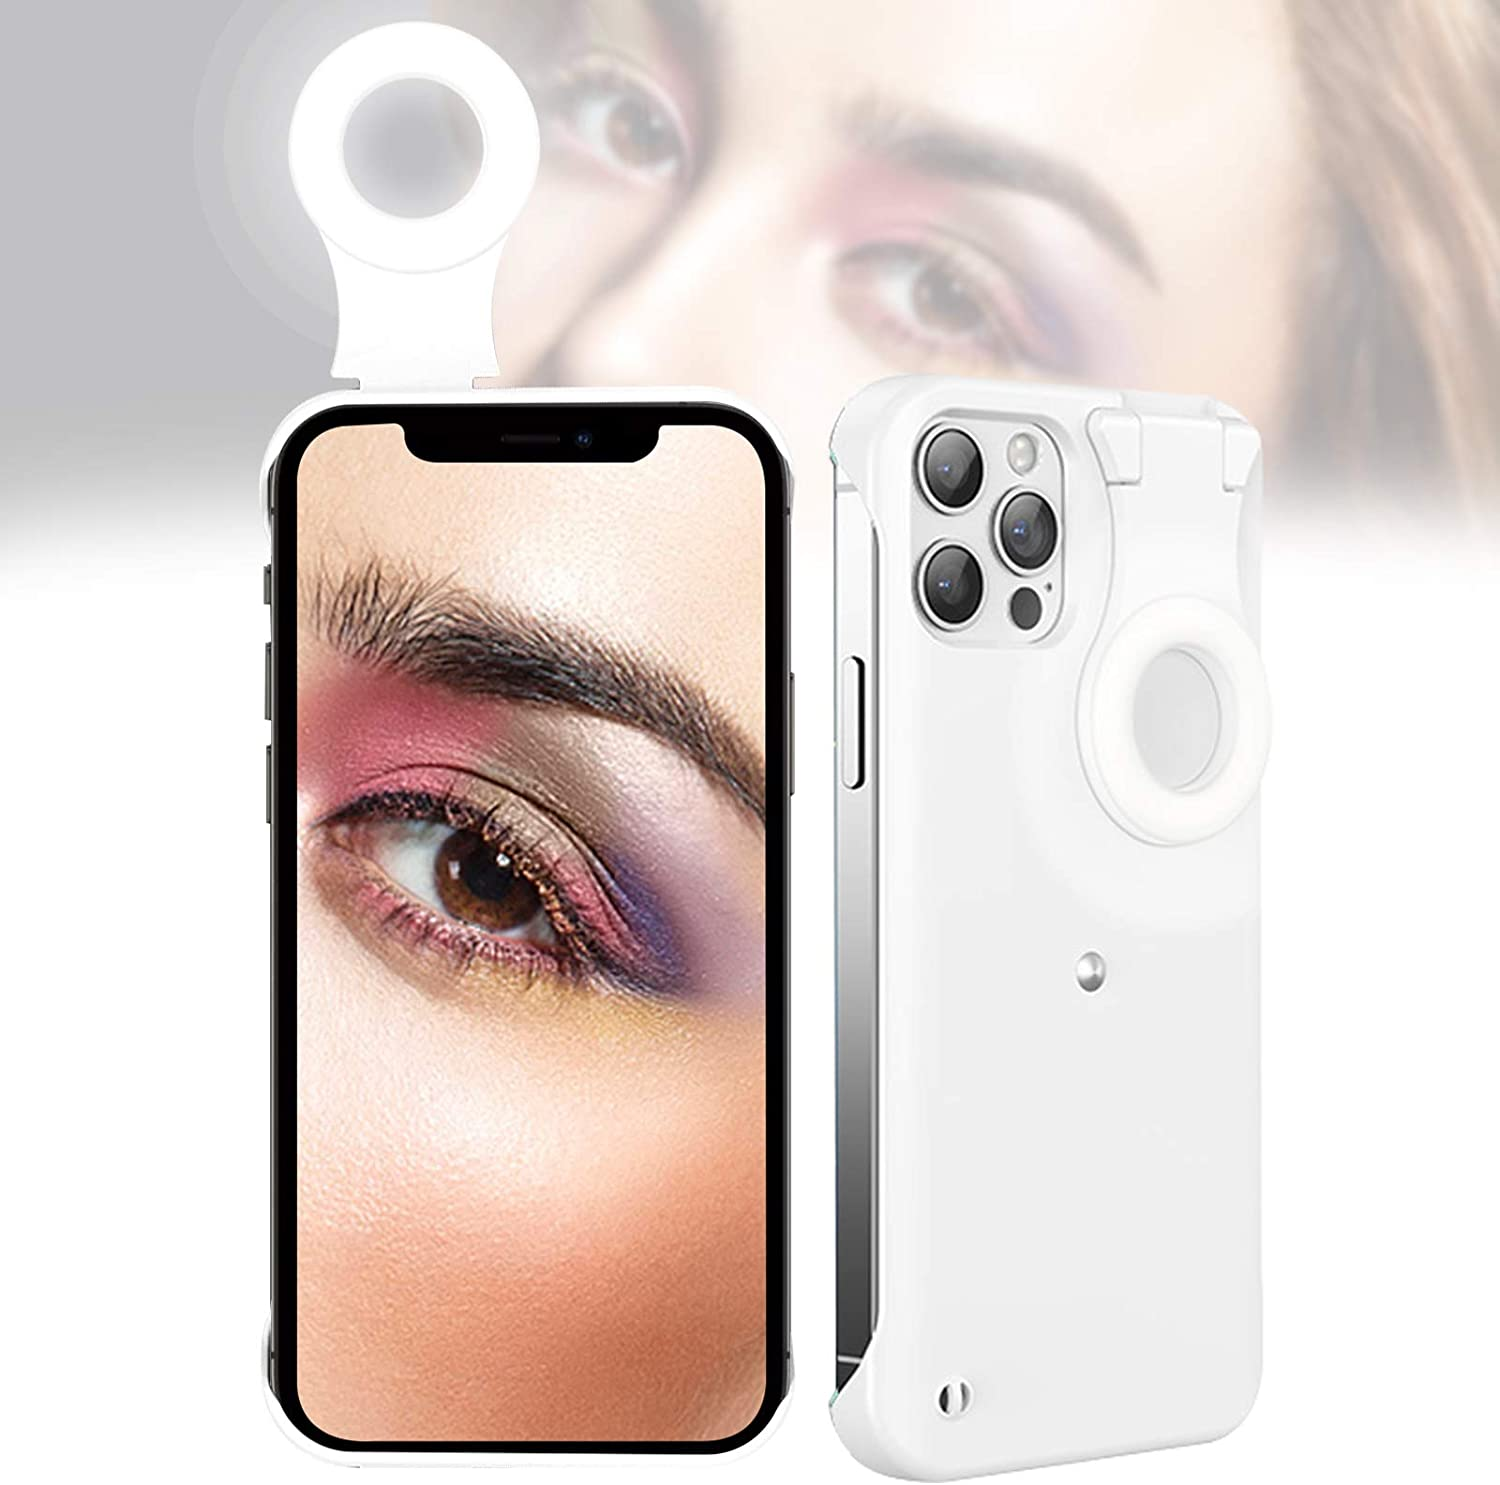 Selfie Case for iPhone 11 Pro Max, Selfie Ring Light Case for iPhone 11 Pro Max, LED Luminous Selfie Light Up Case for iPhone 11 Pro Max to Tiktok/Live Streaming/Makeup/Photos/YouTube Video - White